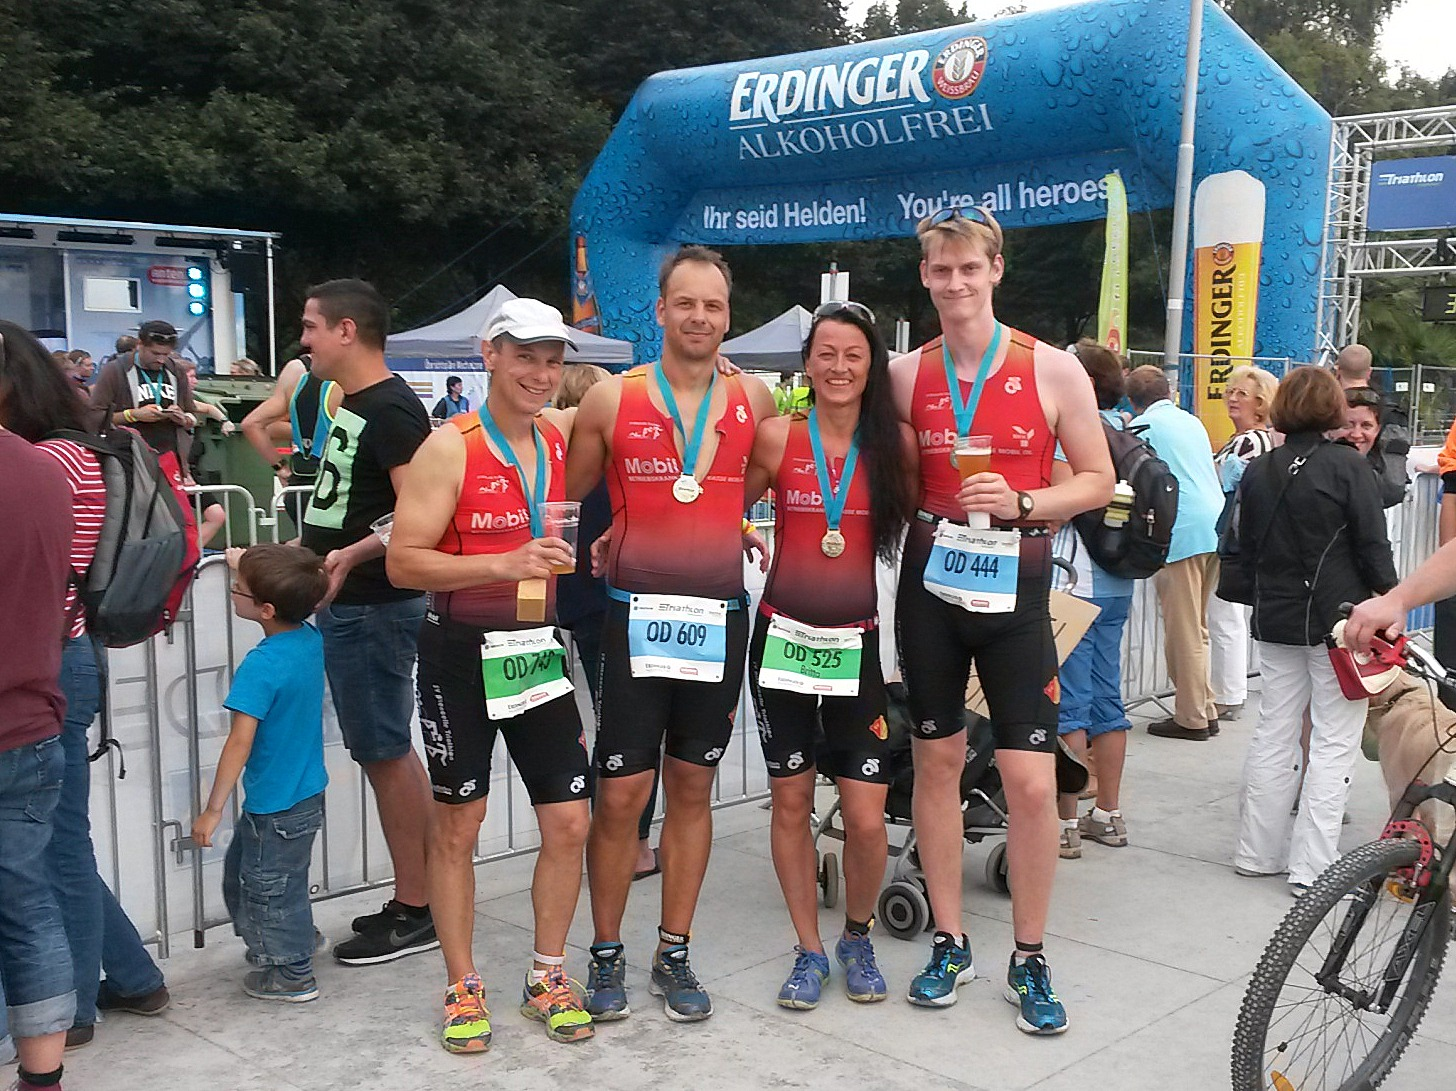 Maschsee-Finisher 2014